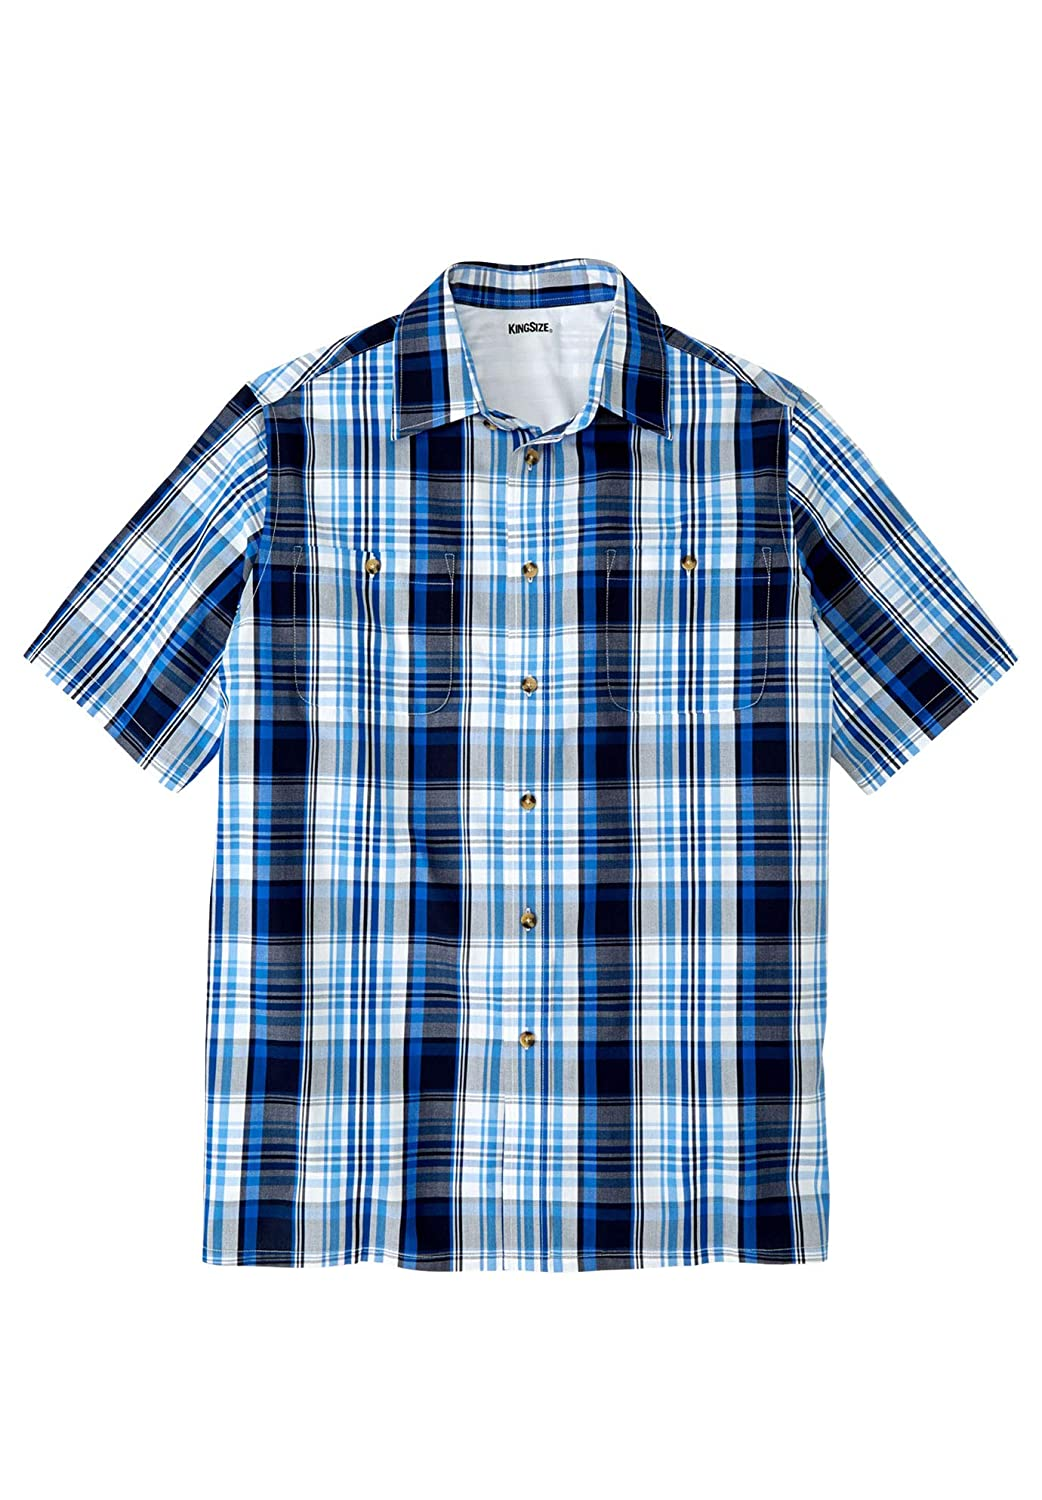 KingSize Mens Big /& Tall Short-Sleeve Plaid Sport Shirt